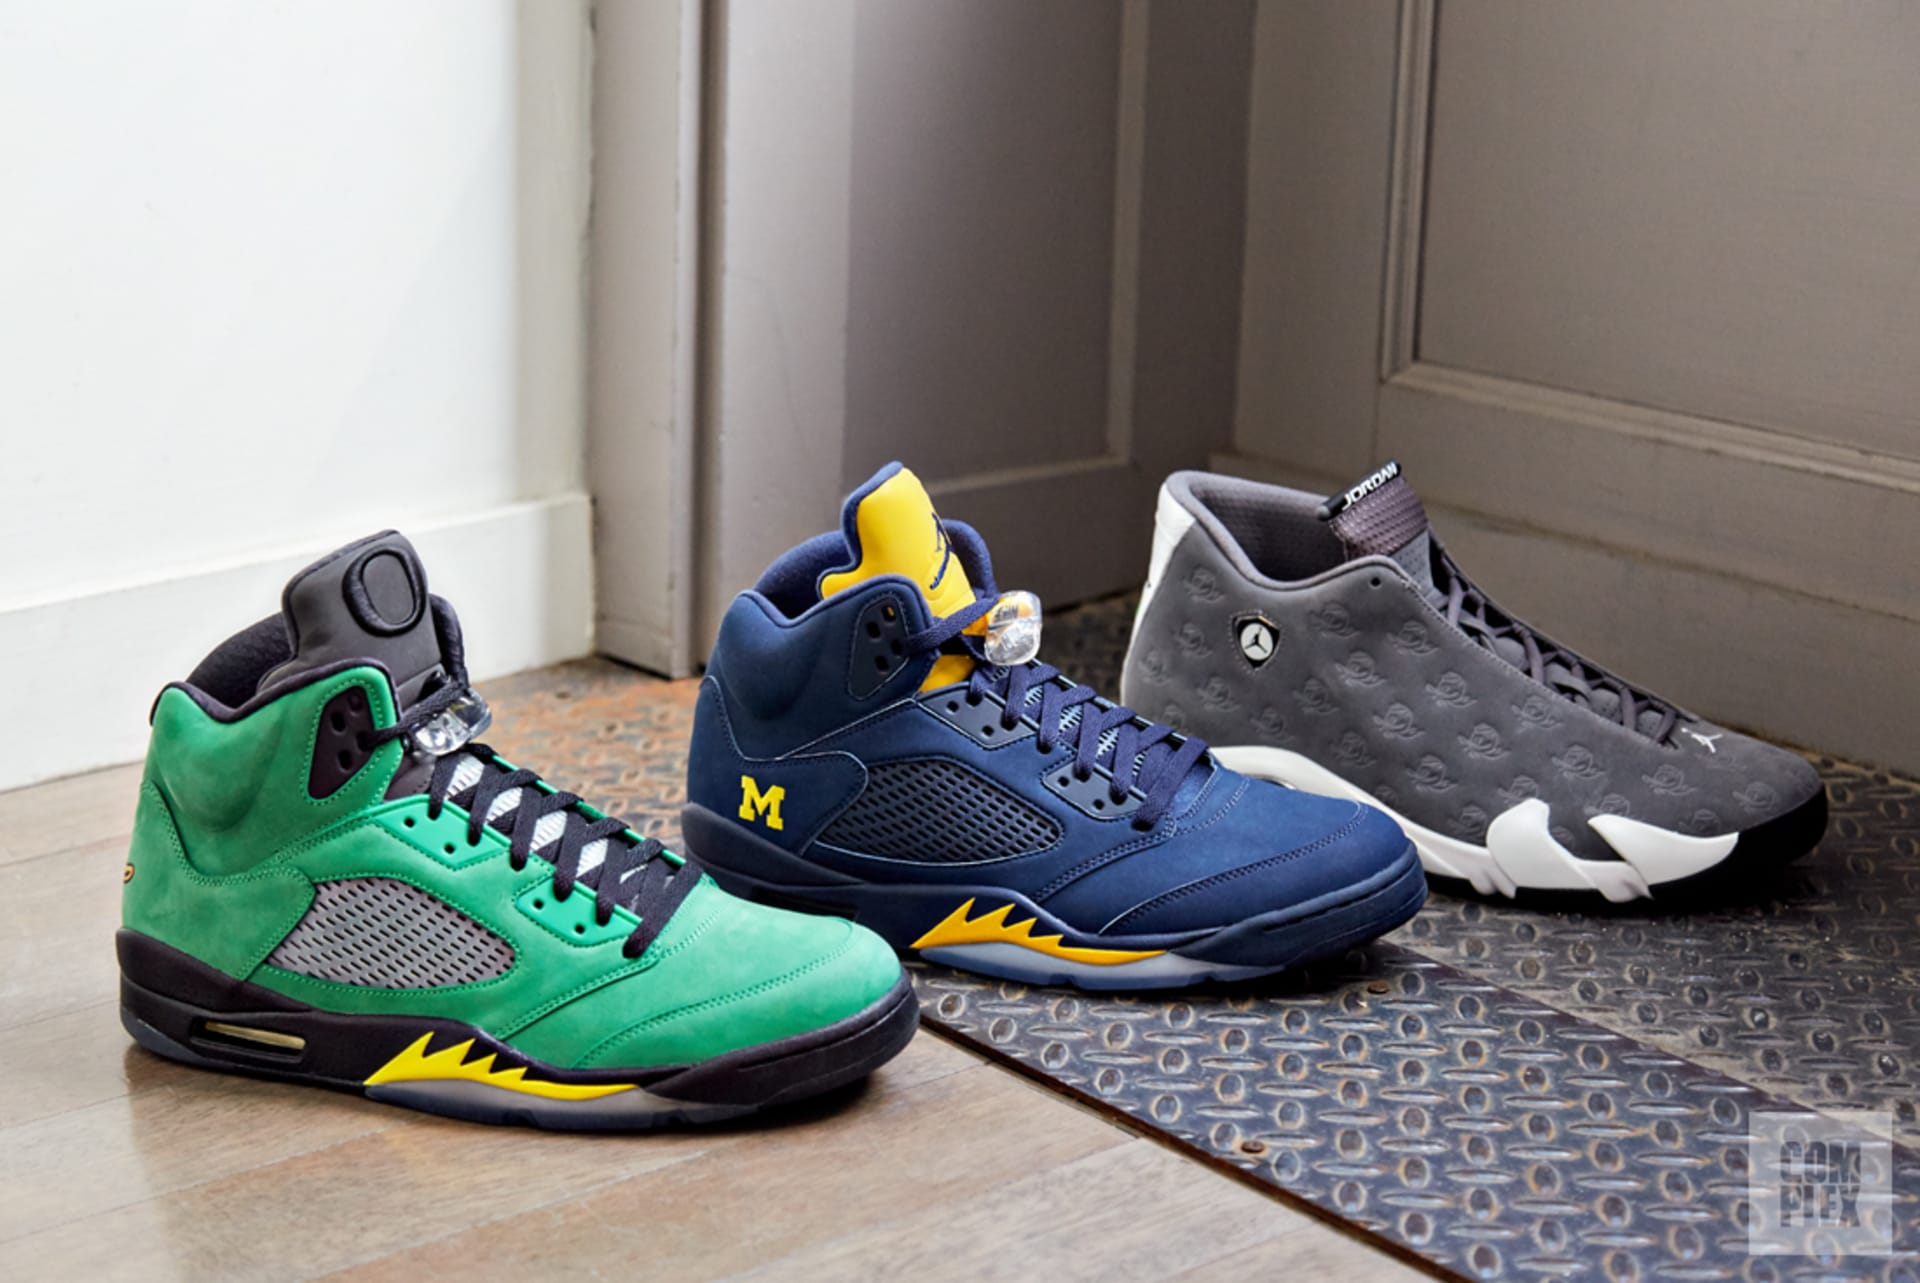 27d88ae3afc Air Jordan PEs made for the University of Oregon and Michigan. Sneakers  courtesy of Stadium Goods. Image via Complex Original David Cabrera